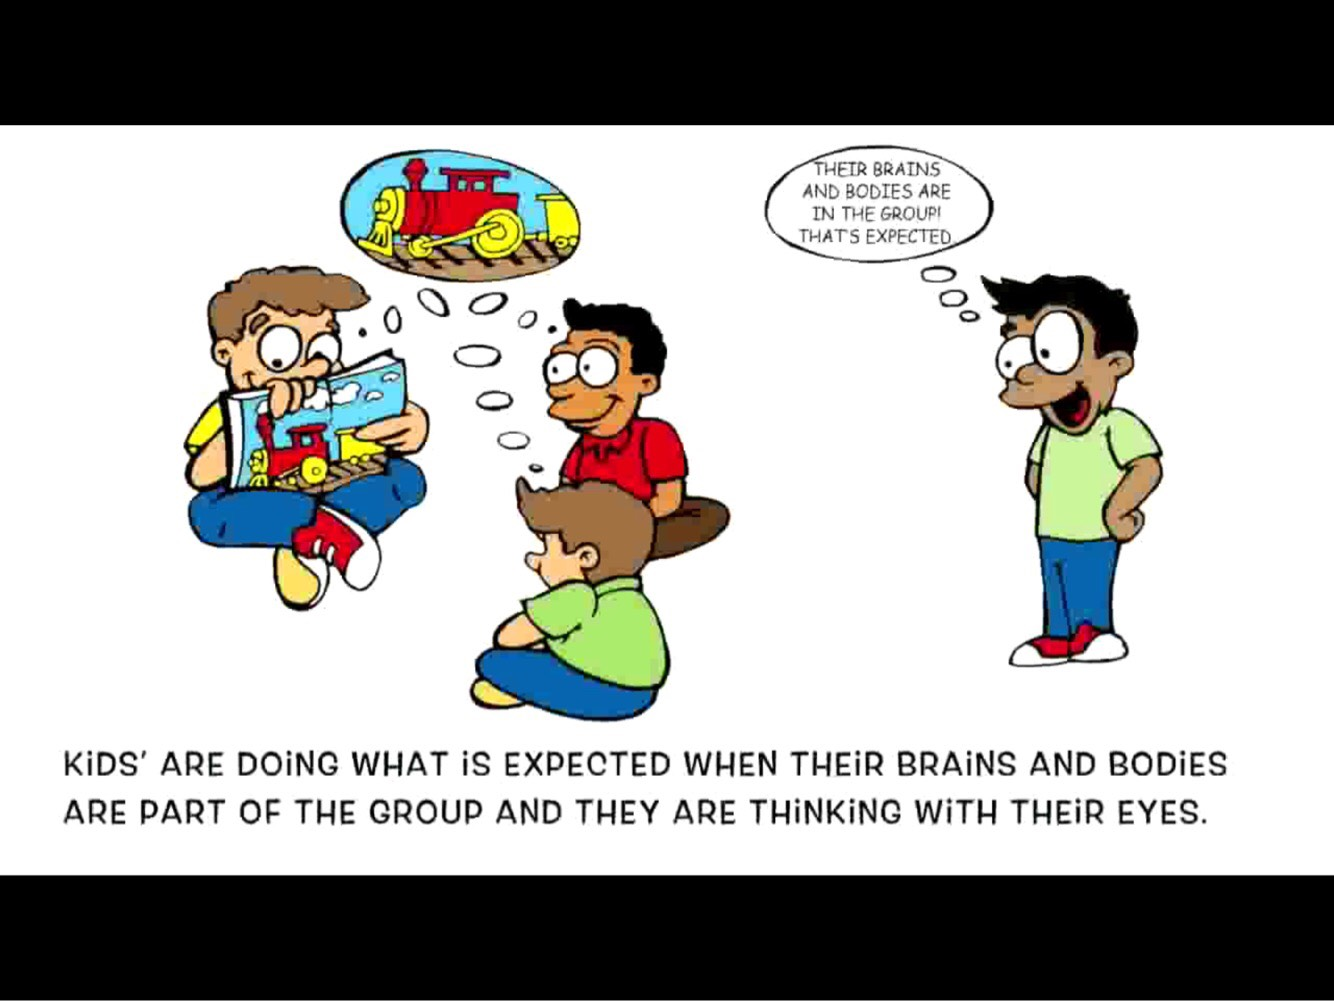 Screenshot of 3 cartoon children looking at a book with guy standing off with speech bubble explaining social expectations of this setting.